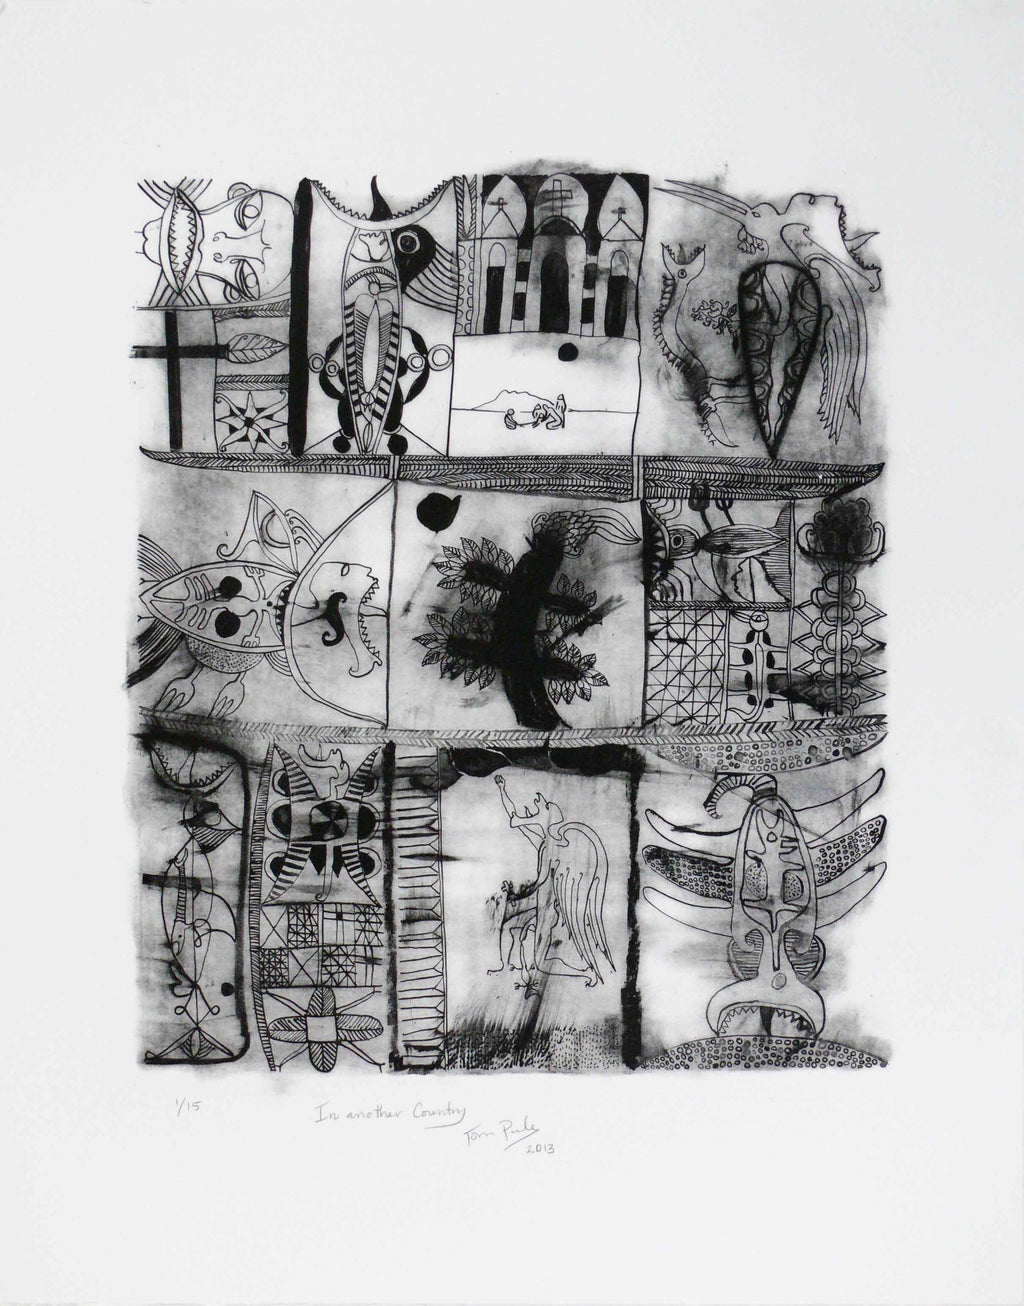 John Pule, In Another Country, 2013,  edition of 15  etching,  paper size: 525 x 670mm